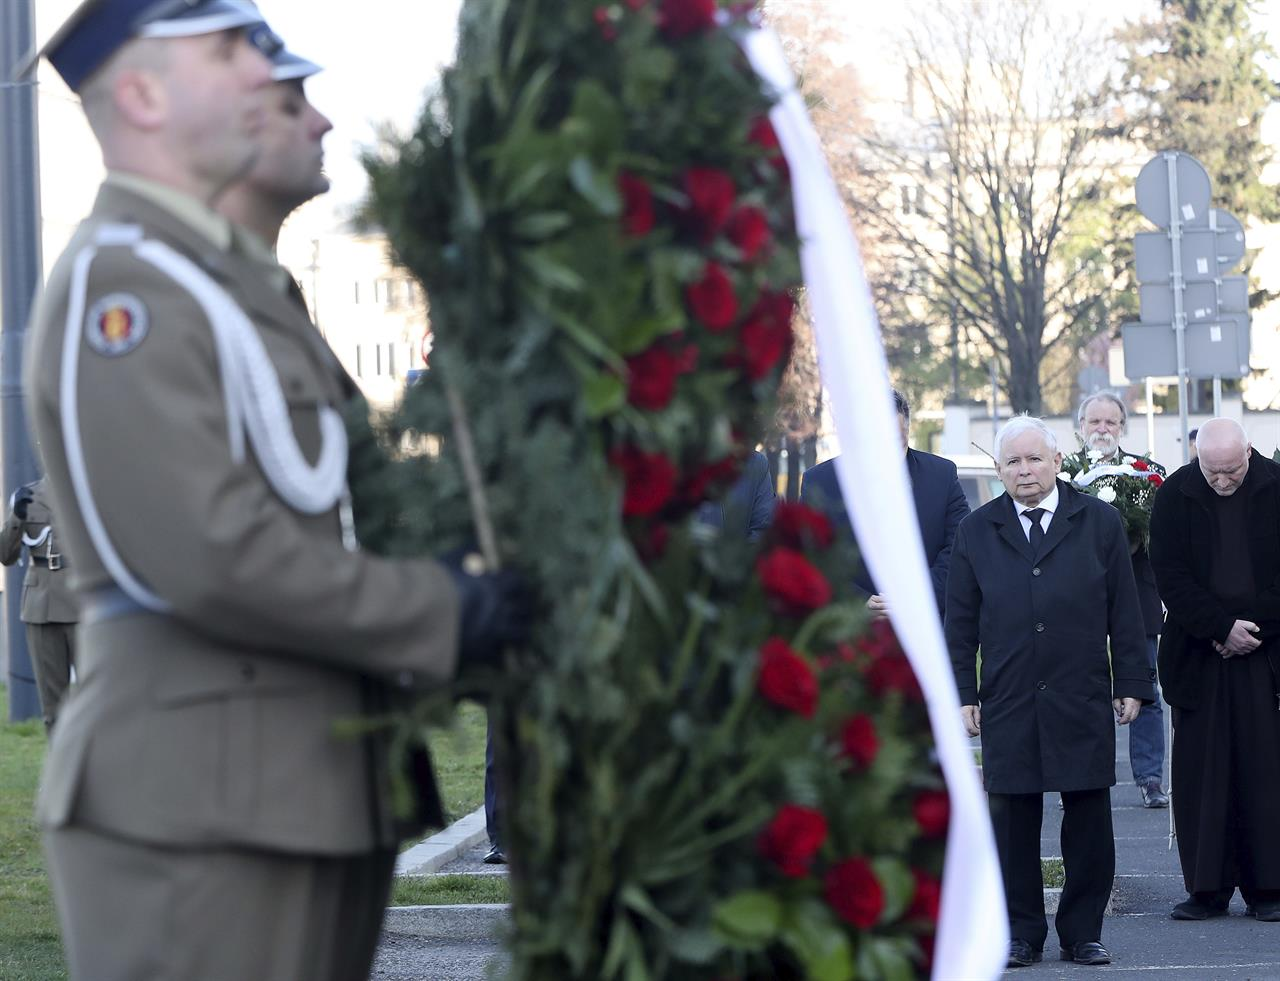 Poland marks 10 years since president killed in plane crash